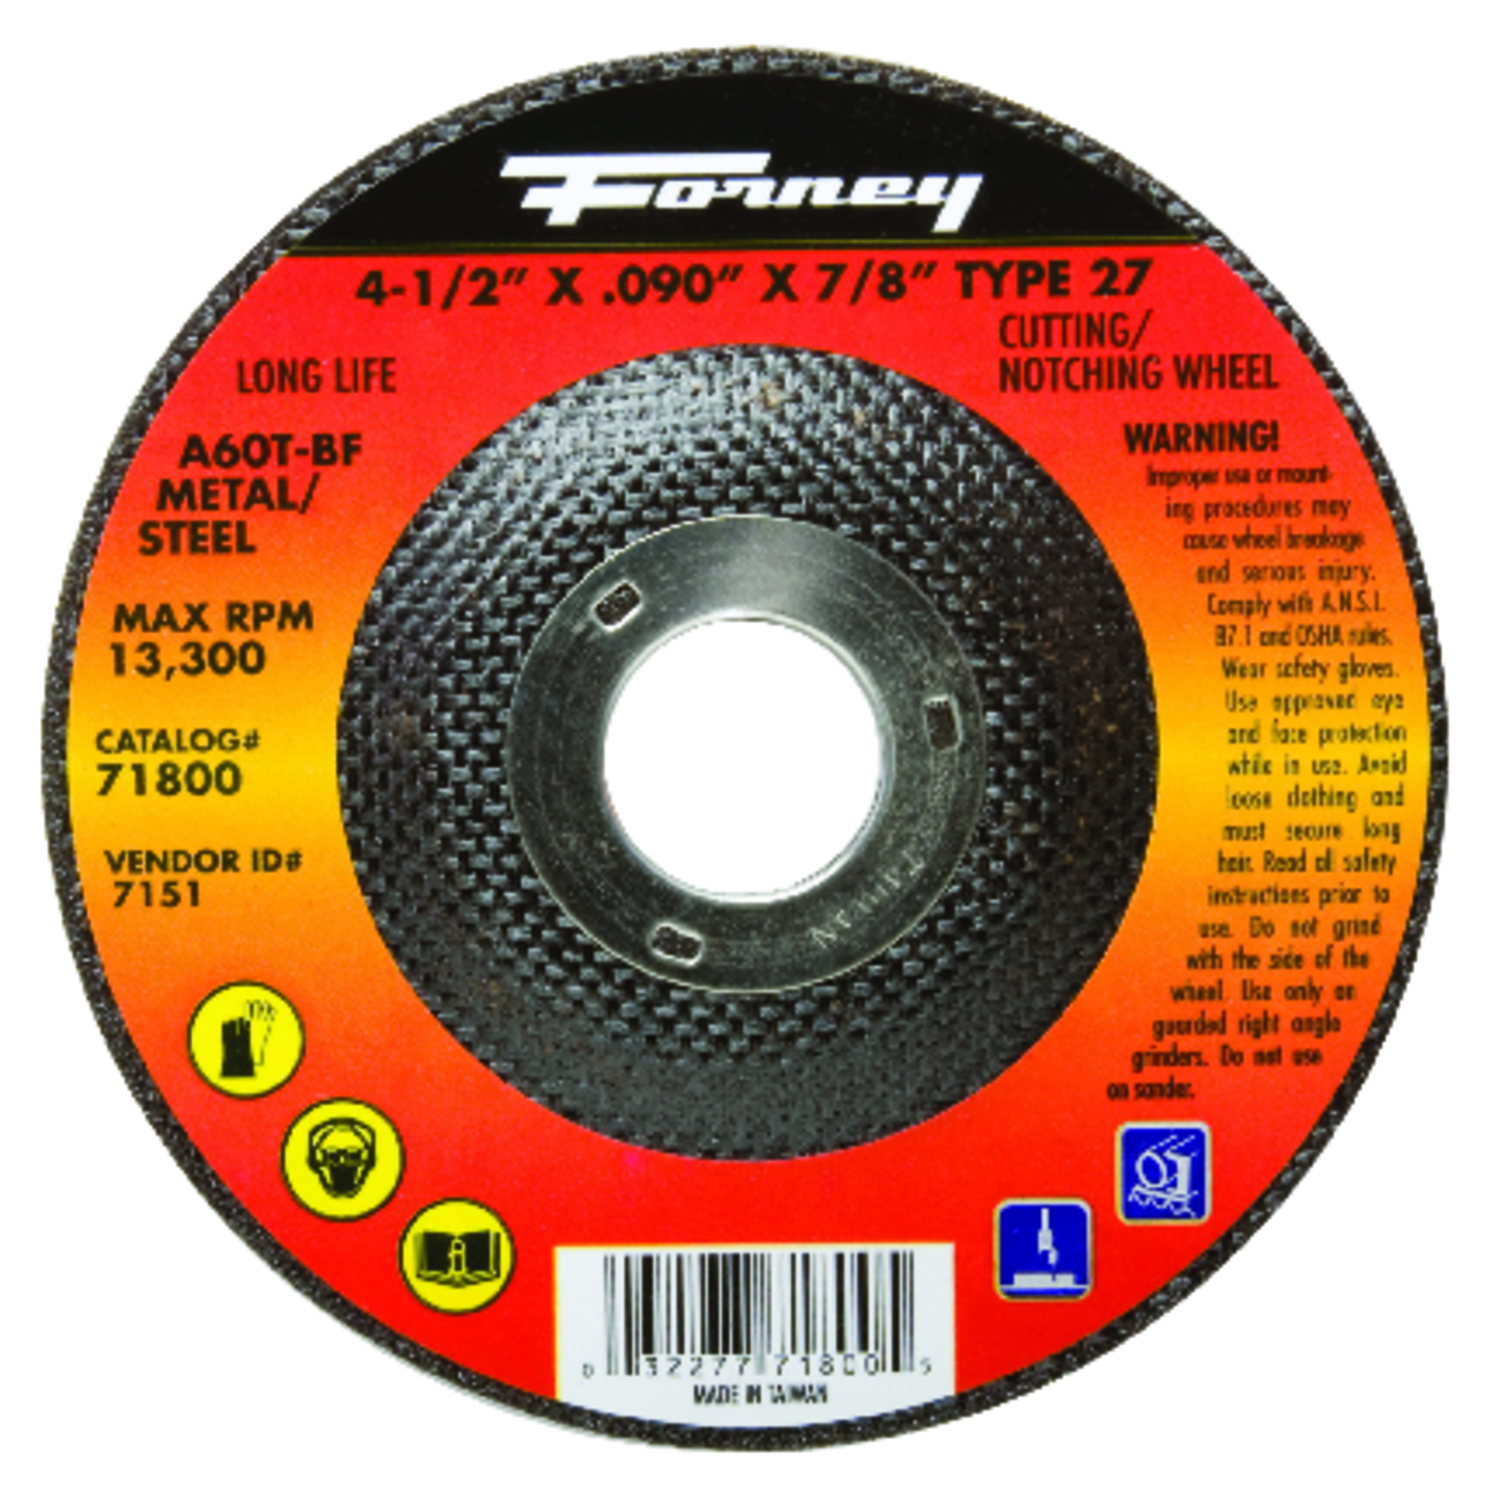 Forney  4-1/2 in. Metal Cut-Off Wheel  .090 in. thick  x 7/8 in.  Aluminum Oxide  1 pc.